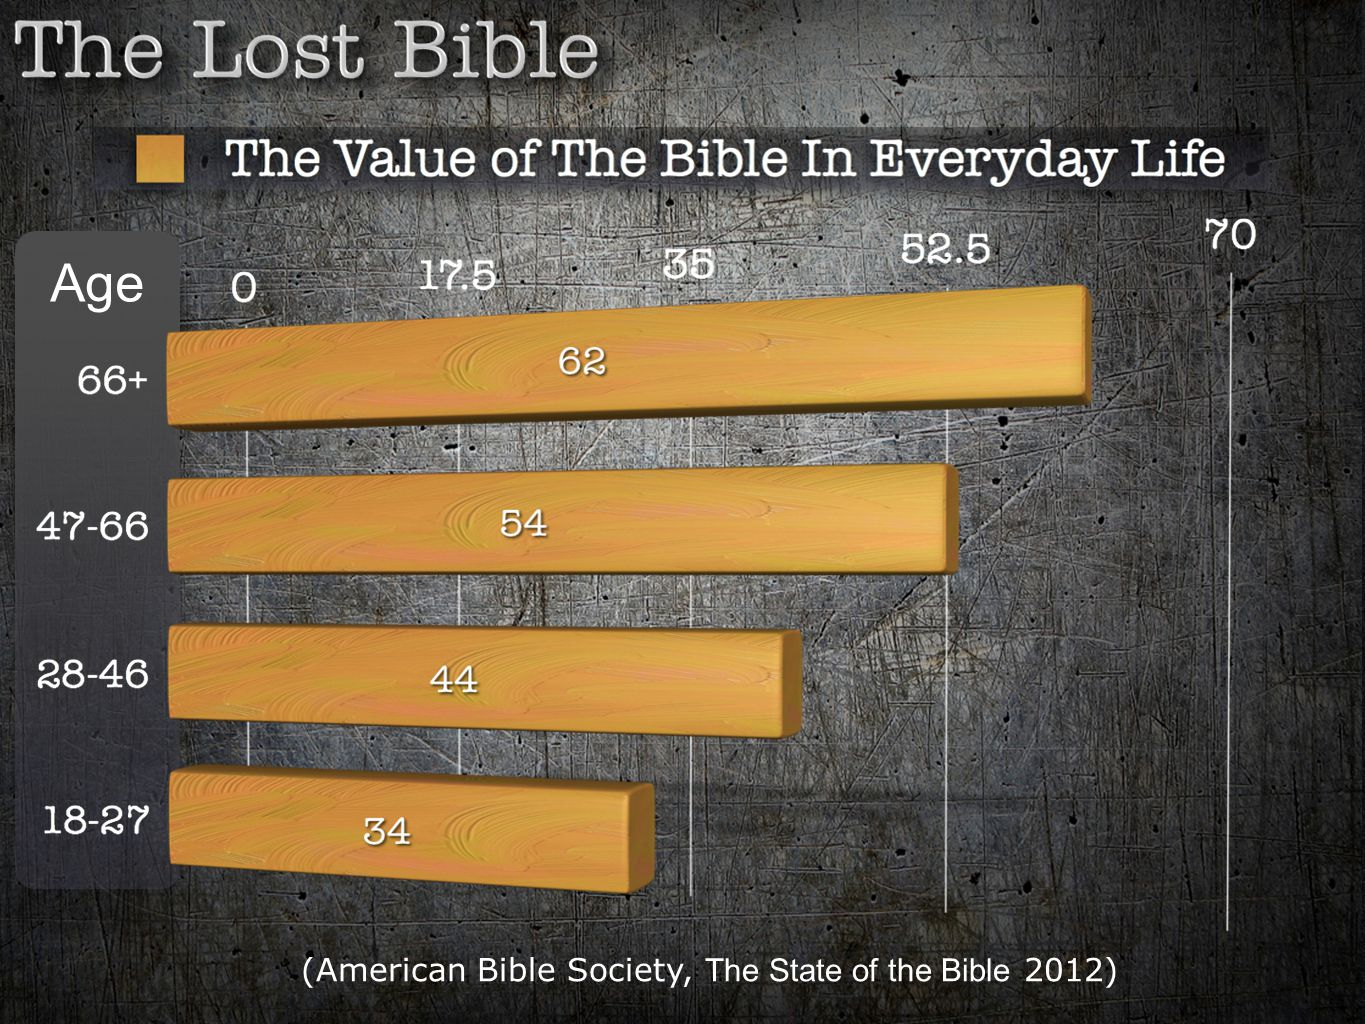 (American Bible Society, The State of the Bible 2012)